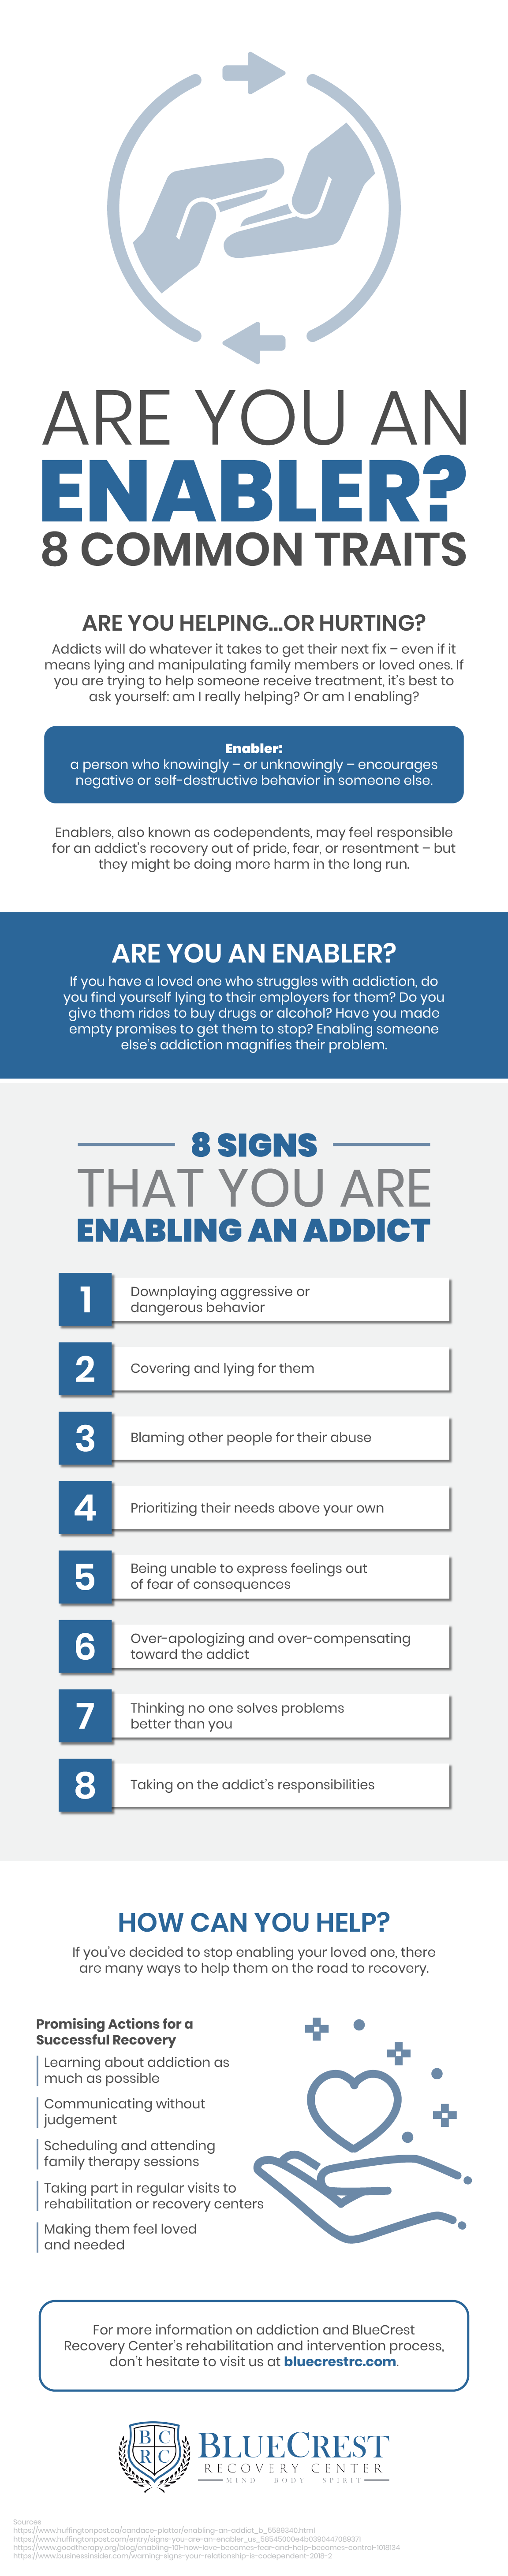 Are You An Enabler Infographic